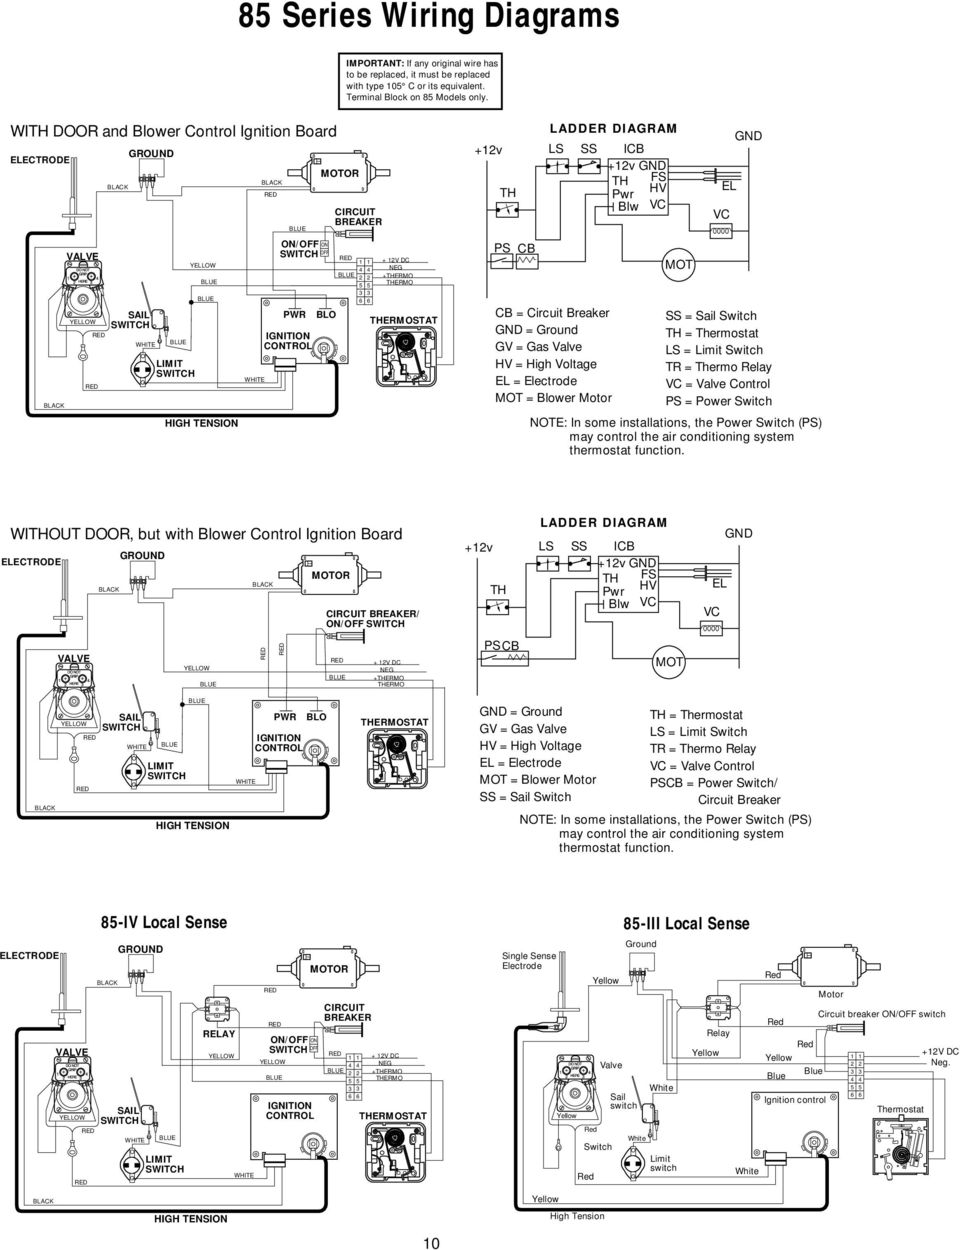 hight resolution of limit switch blue blue white blue pwr ignition control blo blue 4 2 5 3 6 11 85 series wiring diagrams